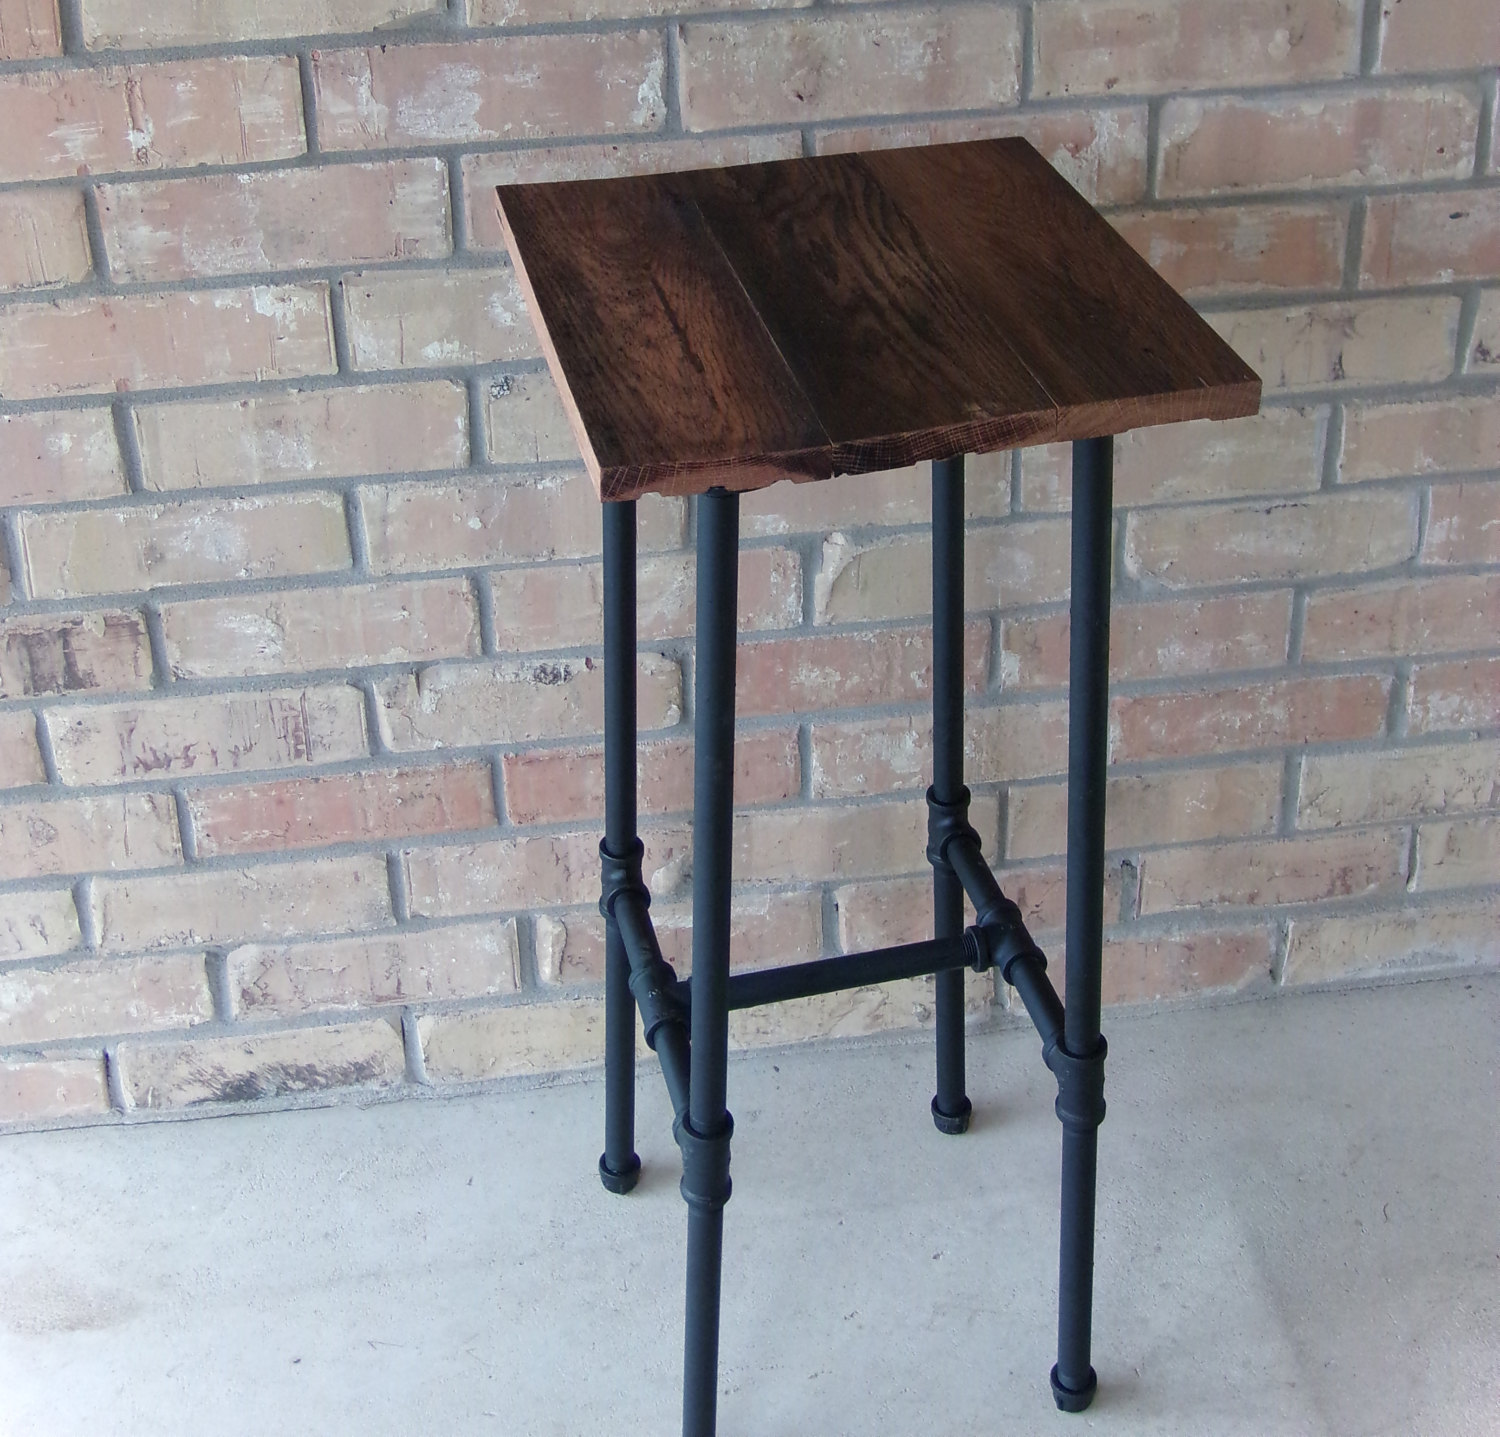 rustic reclaimed wood and pipe barstool accent table etsy fullxfull tables industrial decor farmhouse ikea storage ideas butler tray lamps for living room traditional tall round